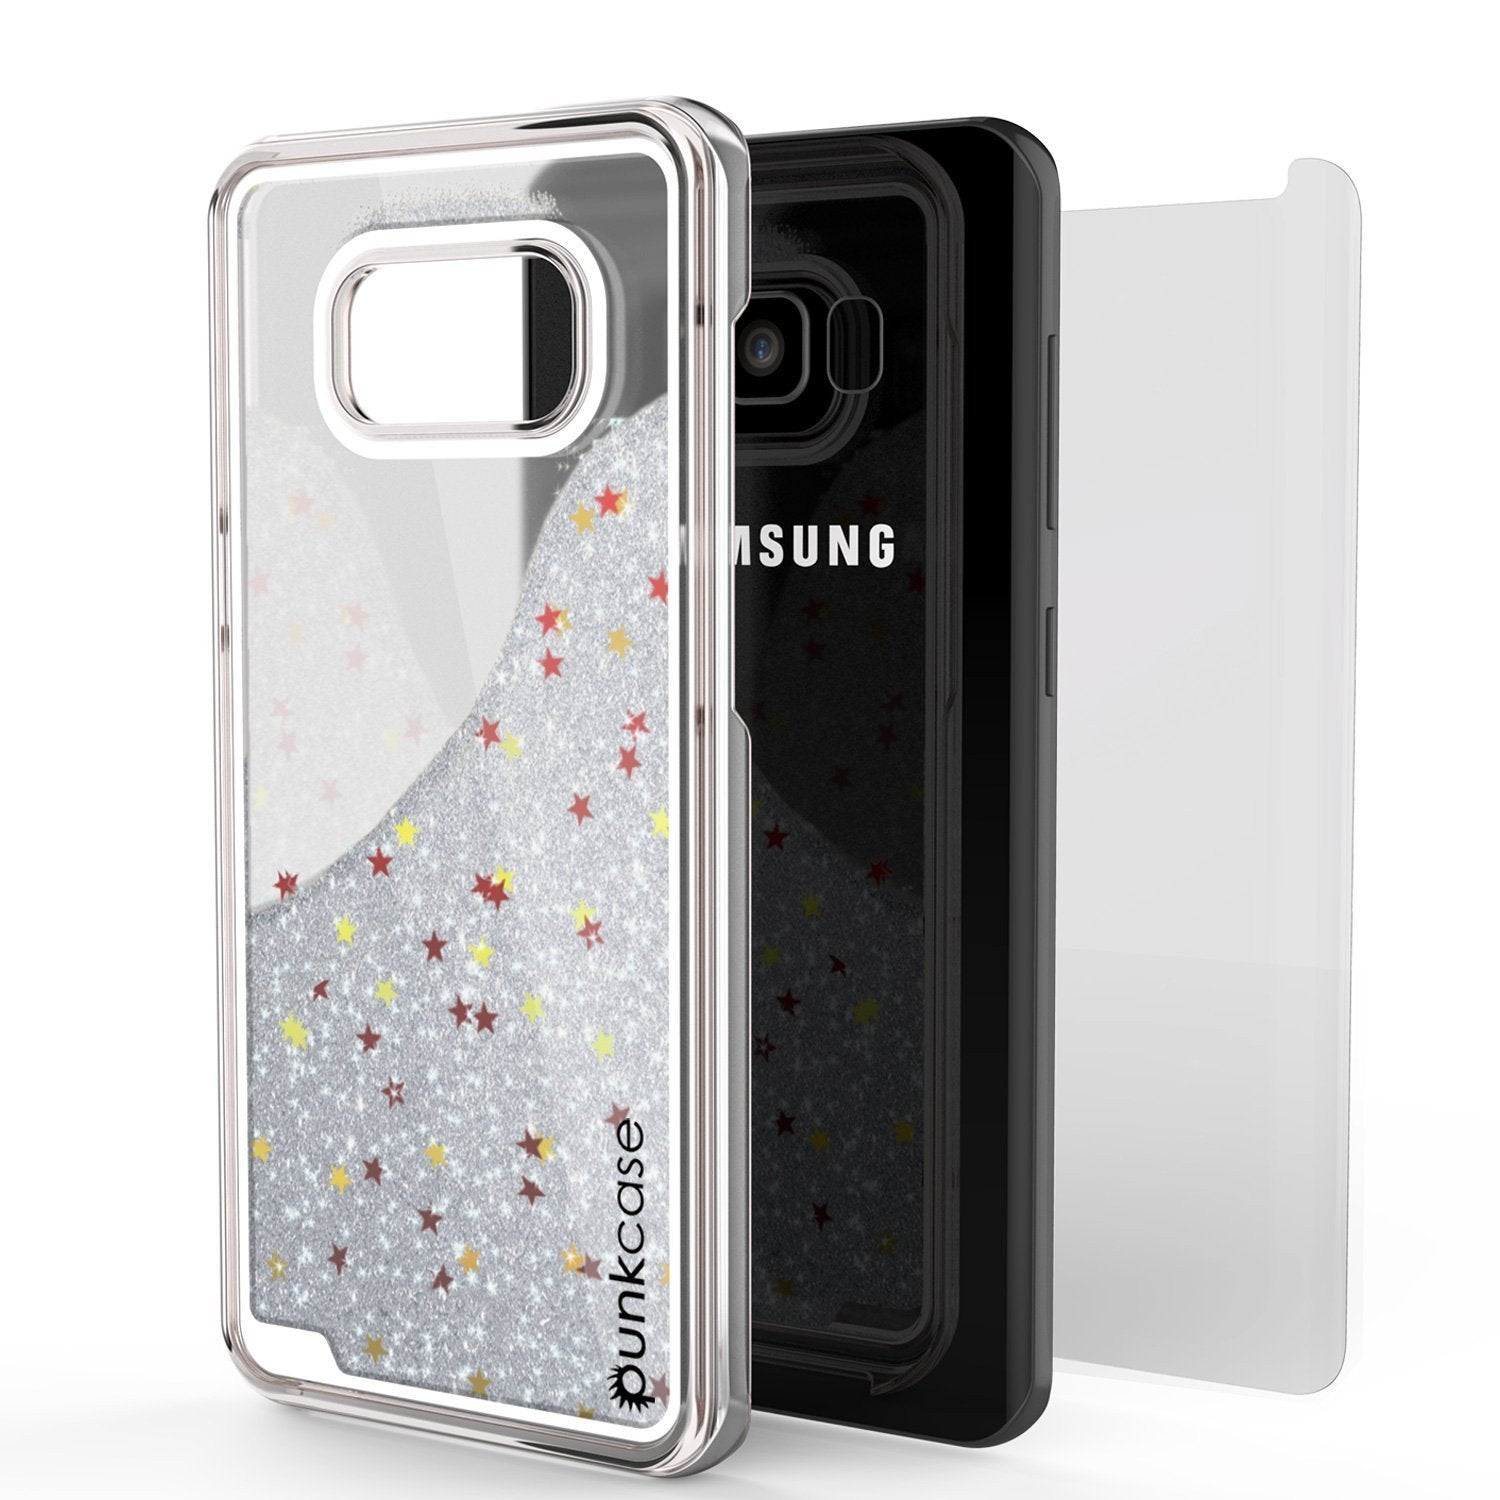 Galaxy S8 Case, Punkcase [Liquid Series] Protective Dual Layer Floating Glitter Cover with lots of Bling & Sparkle + PunkShield Screen Protector for Samsung S8 [Silver] - PunkCase NZ